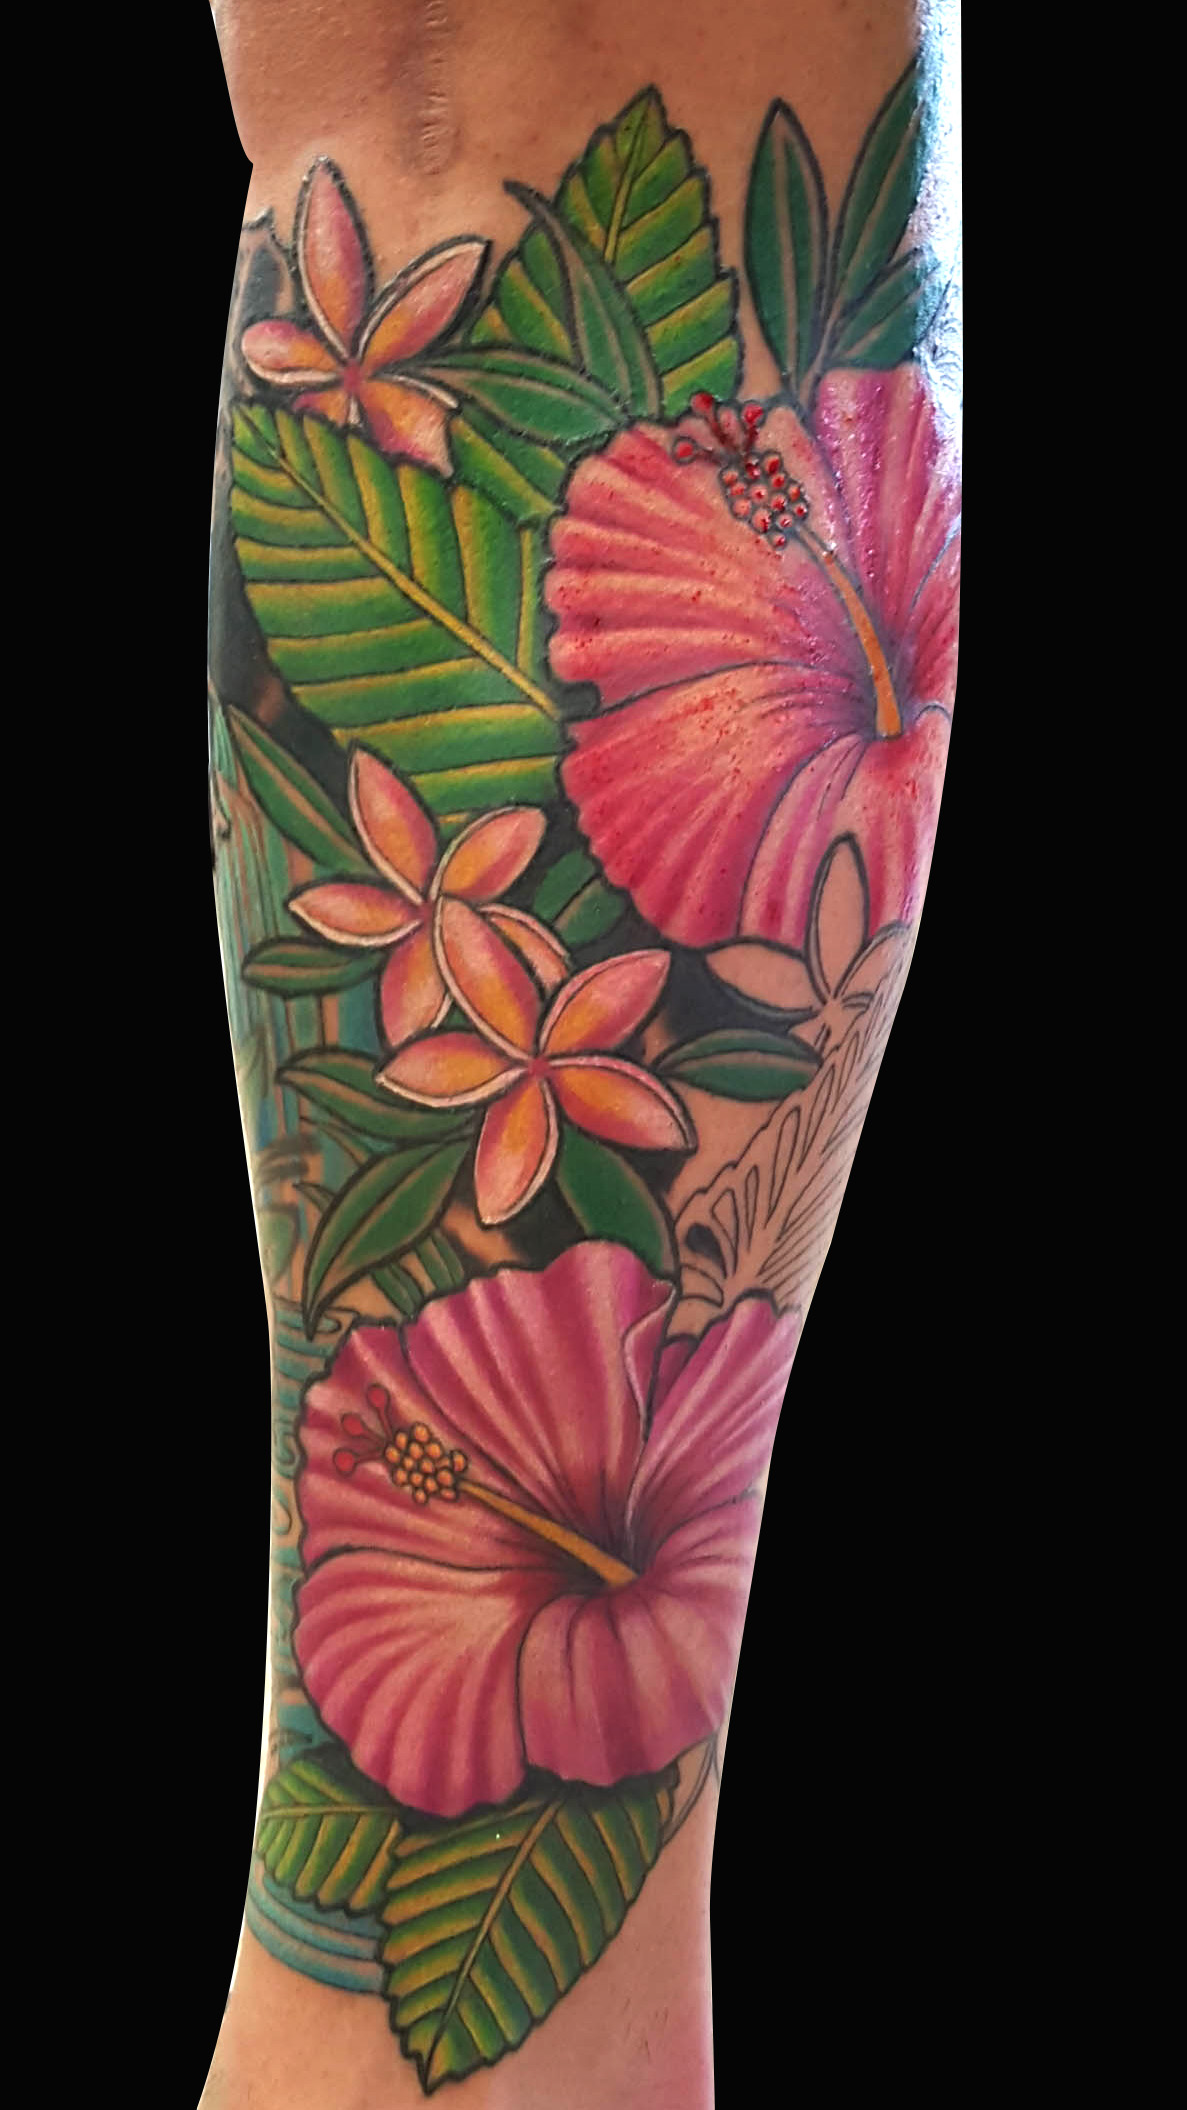 89b9a4848 color tattoos — The Artwork of Elijah Pashby